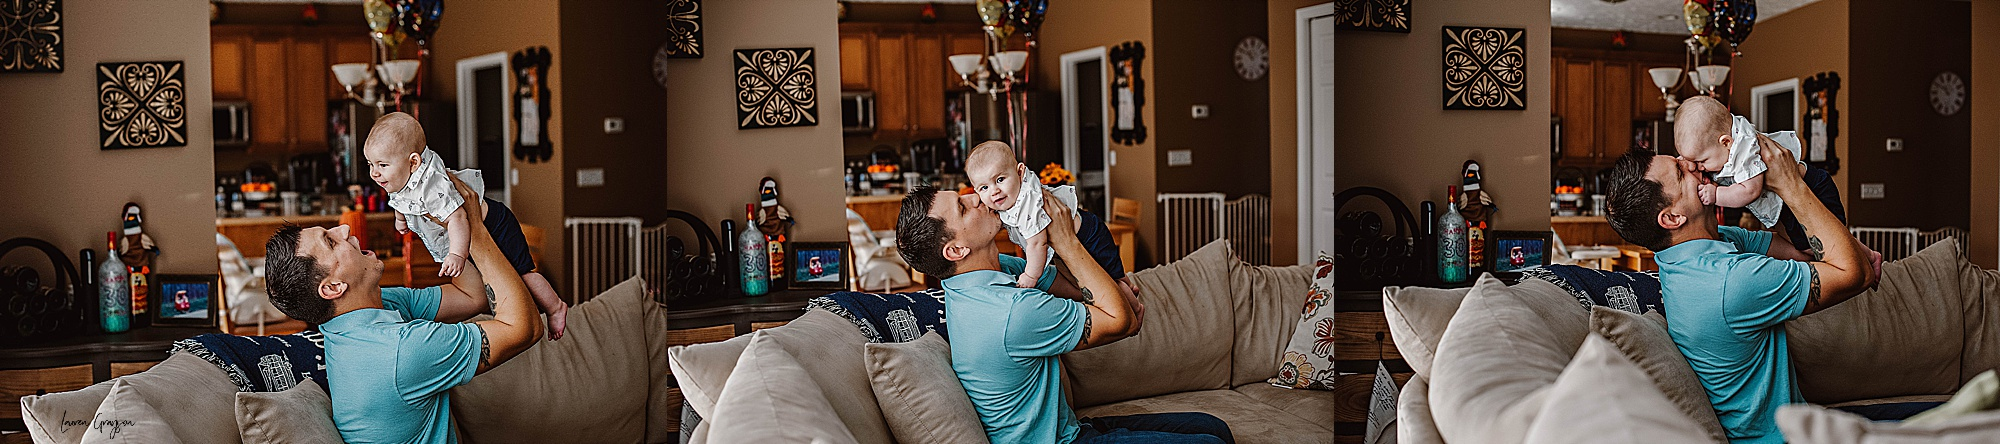 lauren-grayson-photography-cleveland-ohio-family-session-lifestyle-in-home_0051.jpg